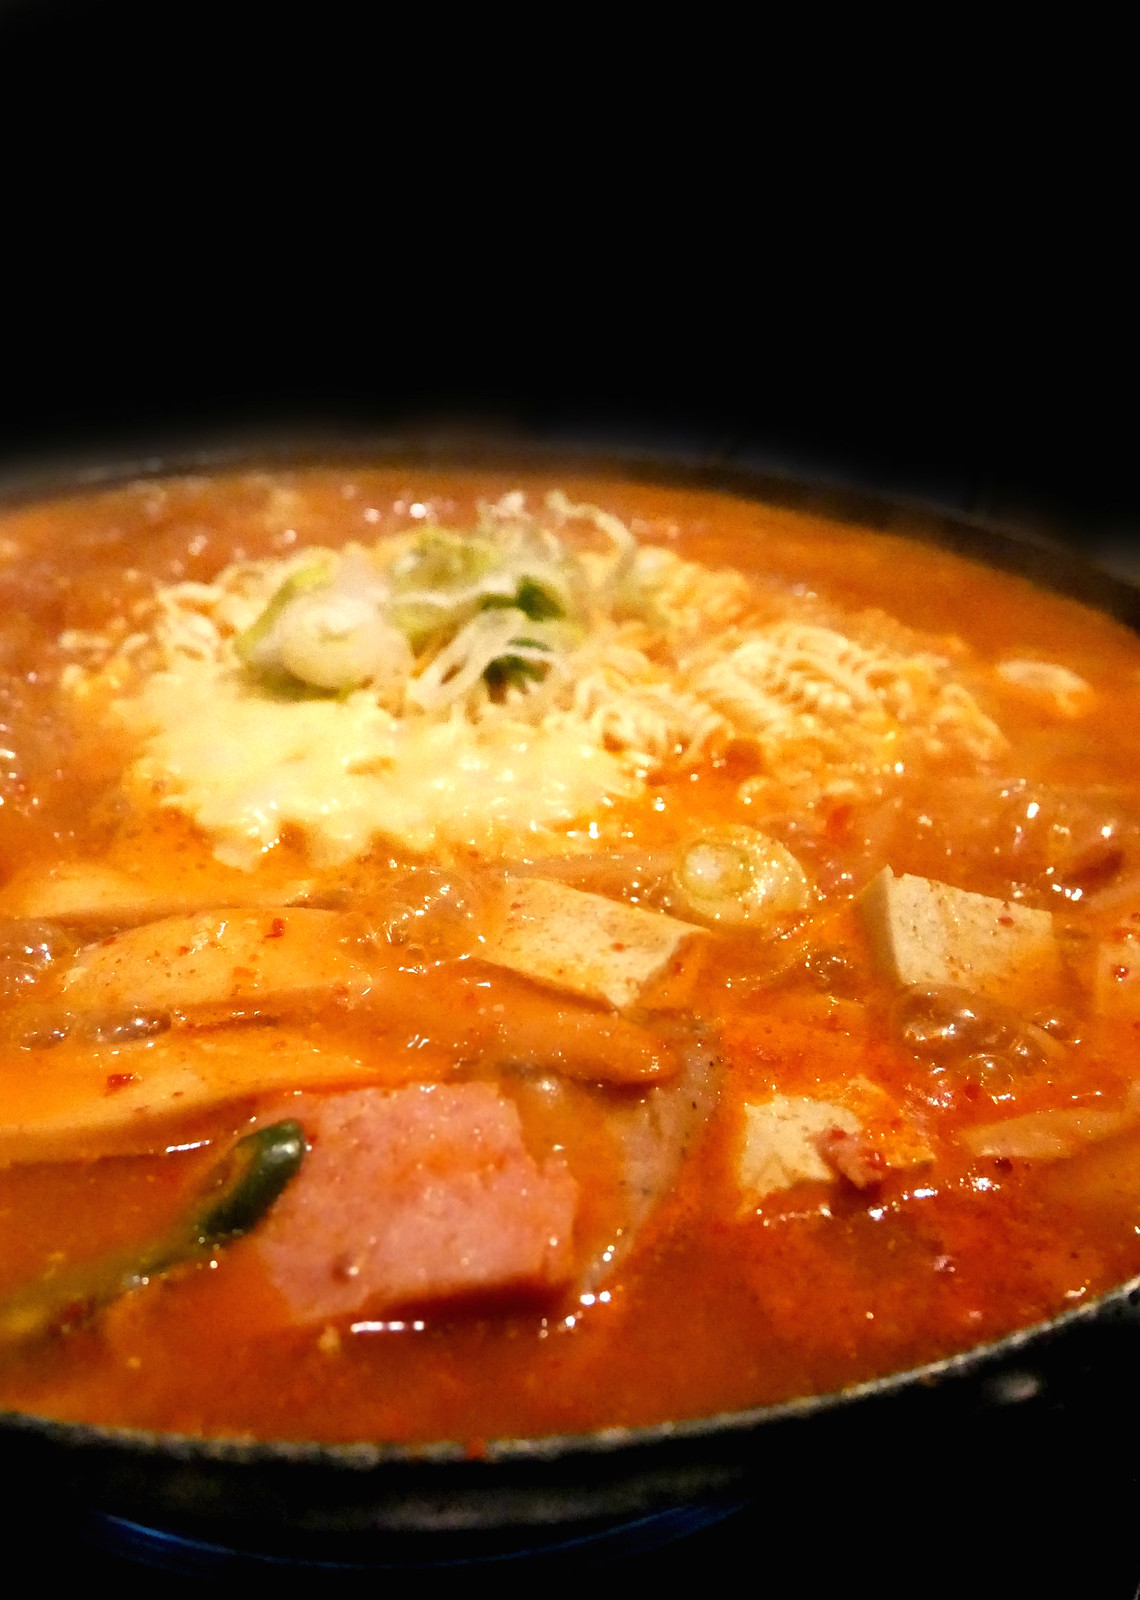 CHEESY Korean Food: Army Stew With Cheese